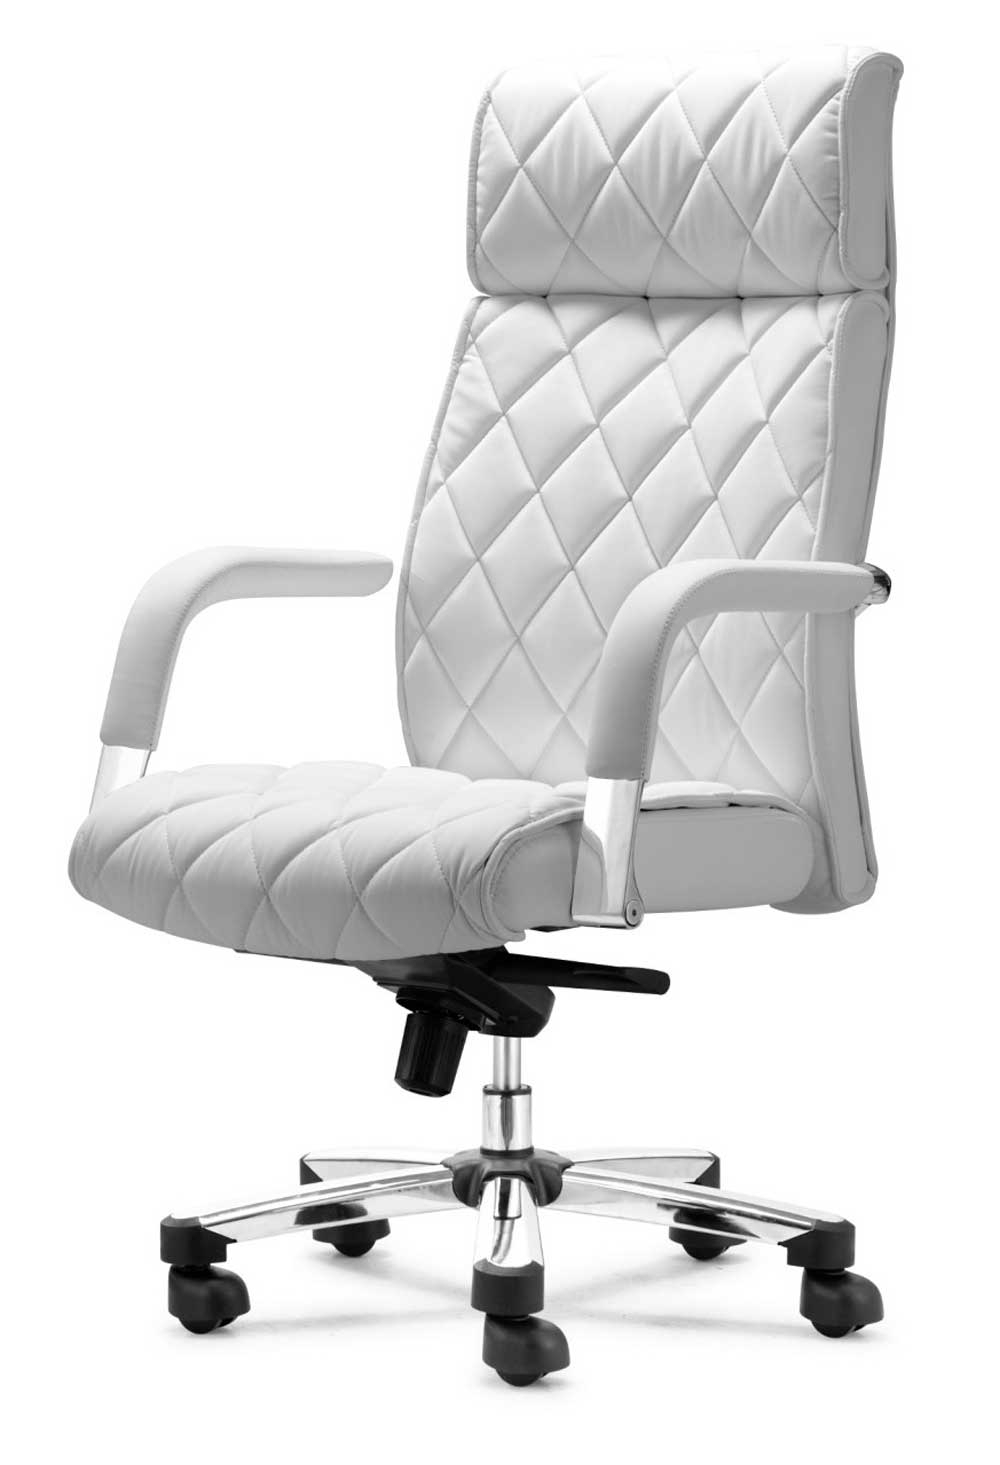 Crazy Oversized Office Chairs Wonderfull Design Big Desk Chairs With Recent Oversized Executive Office Chairs (View 20 of 20)